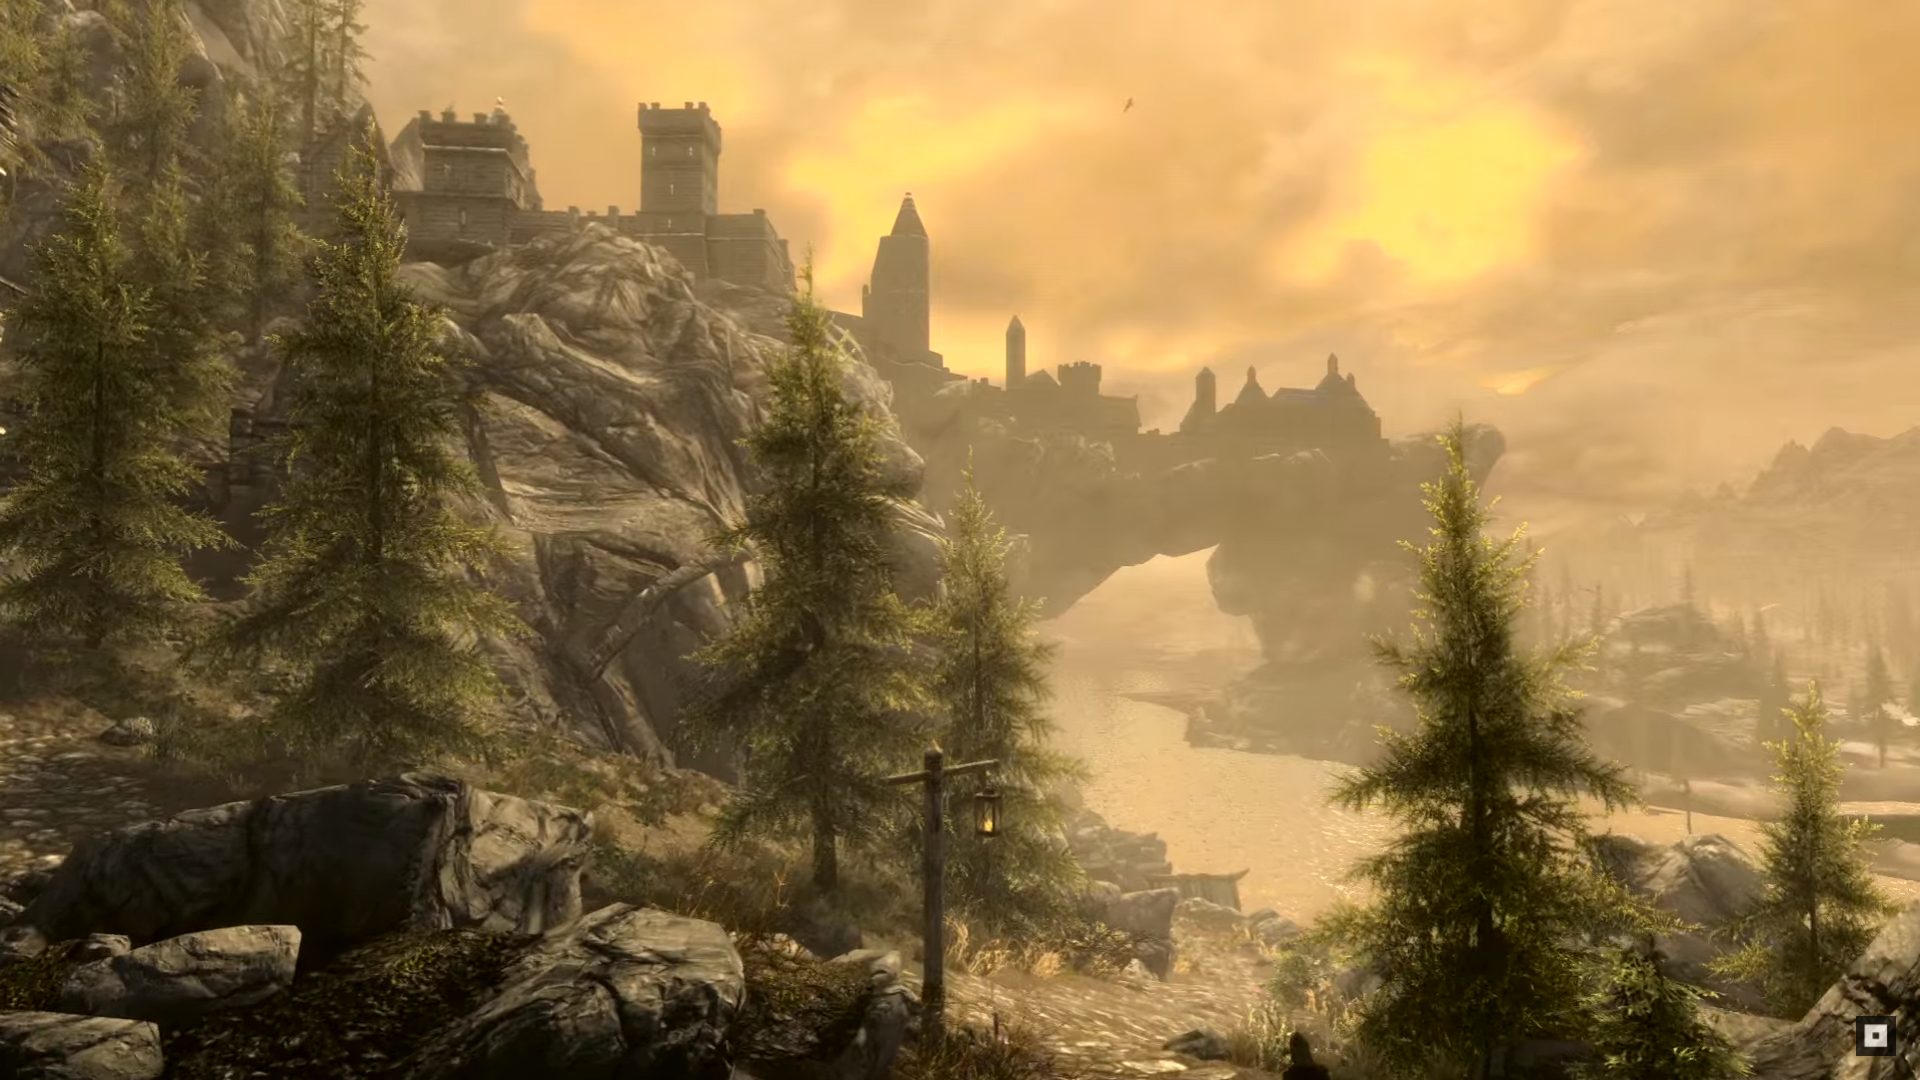 Skyrim Special Edition Will Be Free to All PC Owners That Own Skyrim